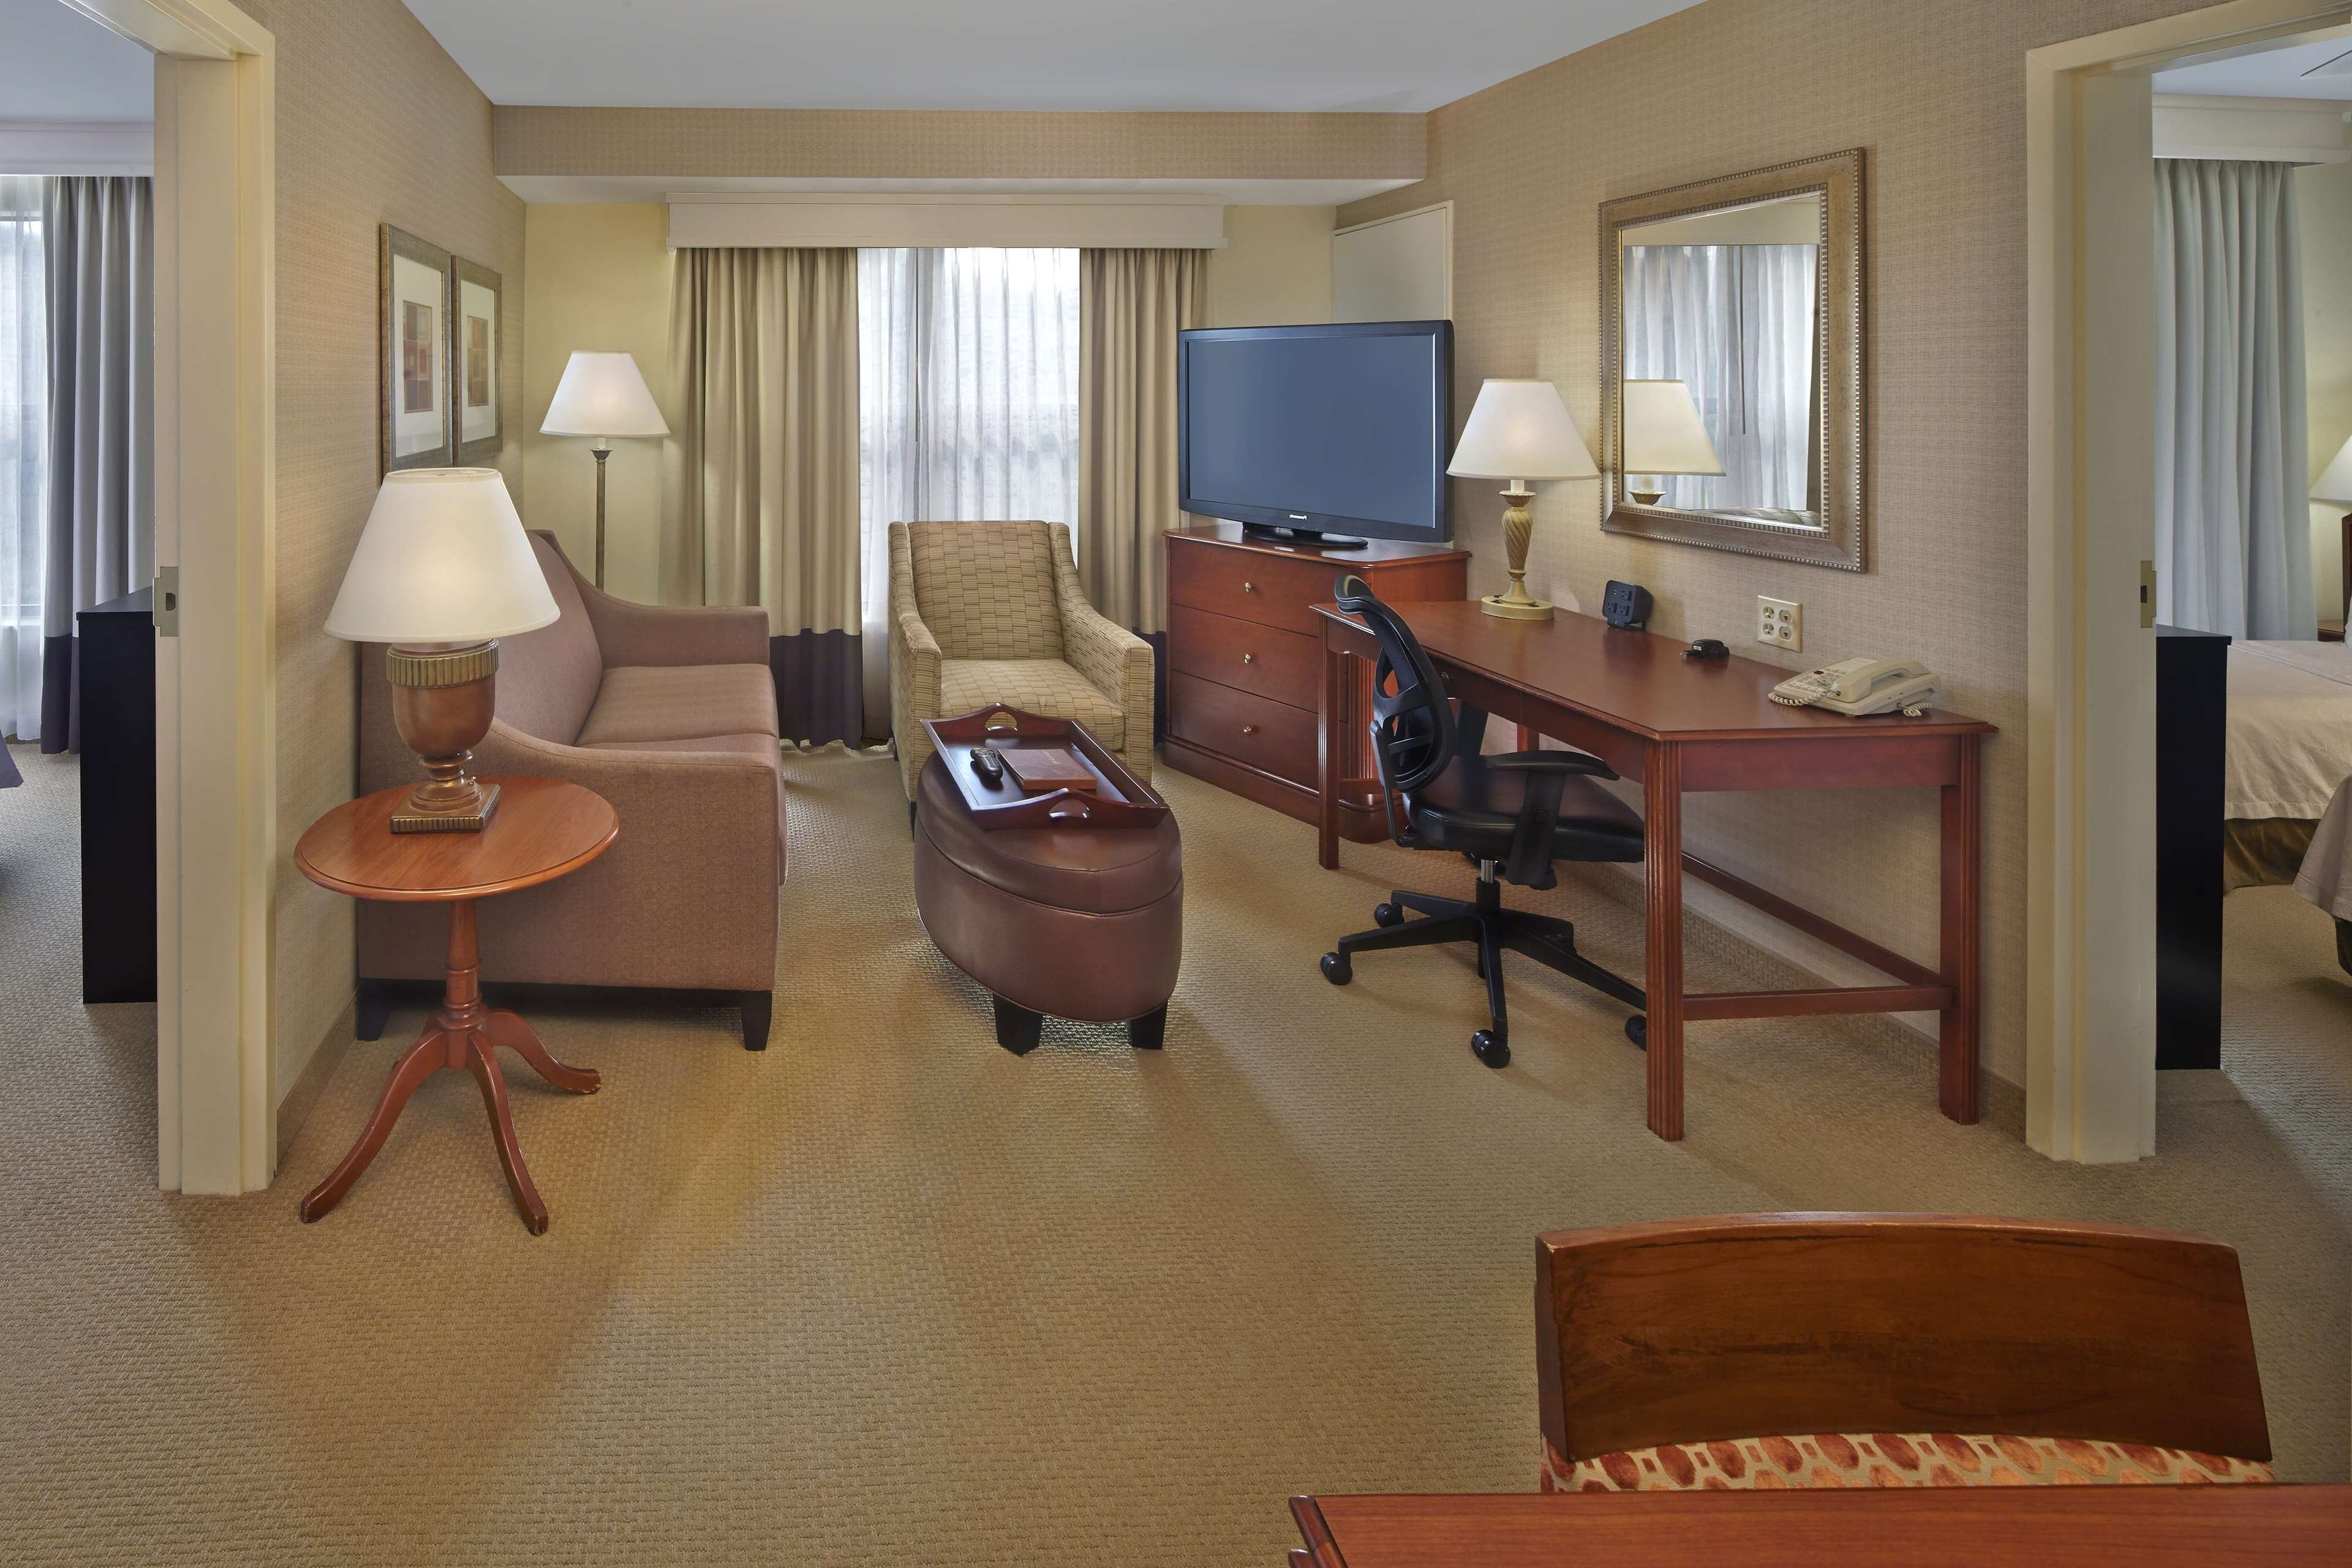 Homewood Suites by Hilton Columbia image 20